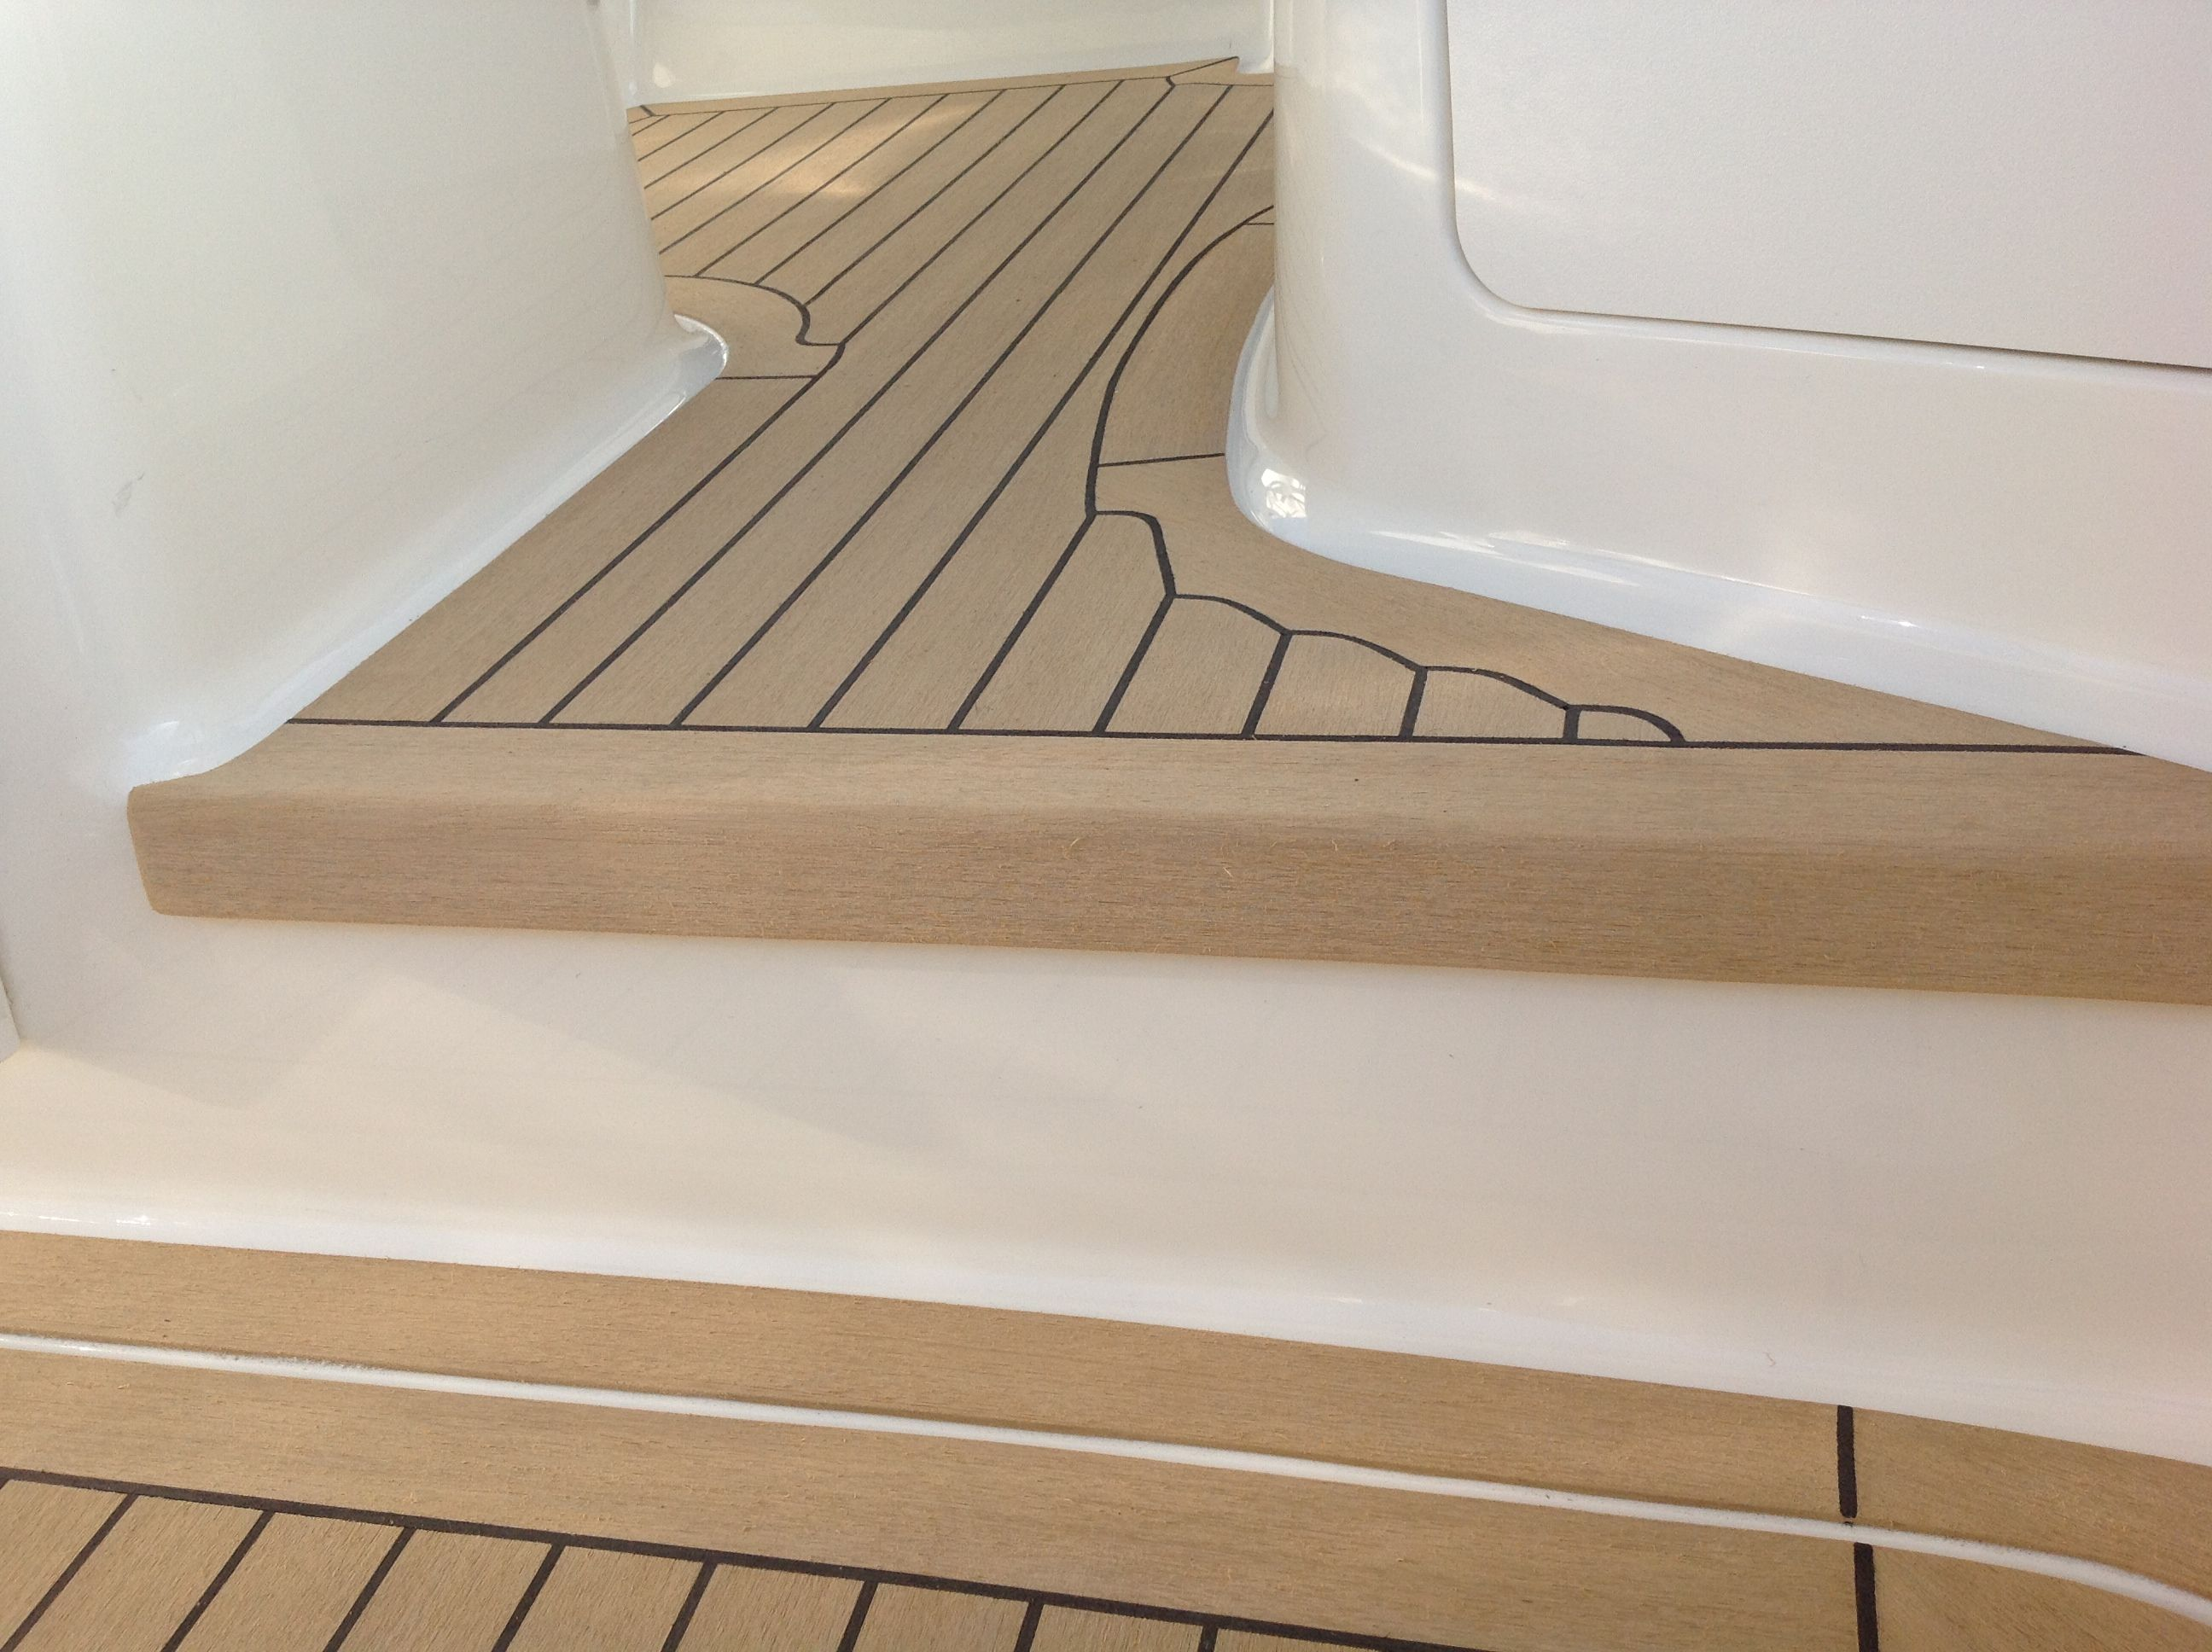 Best Synthetic Treads For Spiral Staircase Teak Deck Boat 400 x 300